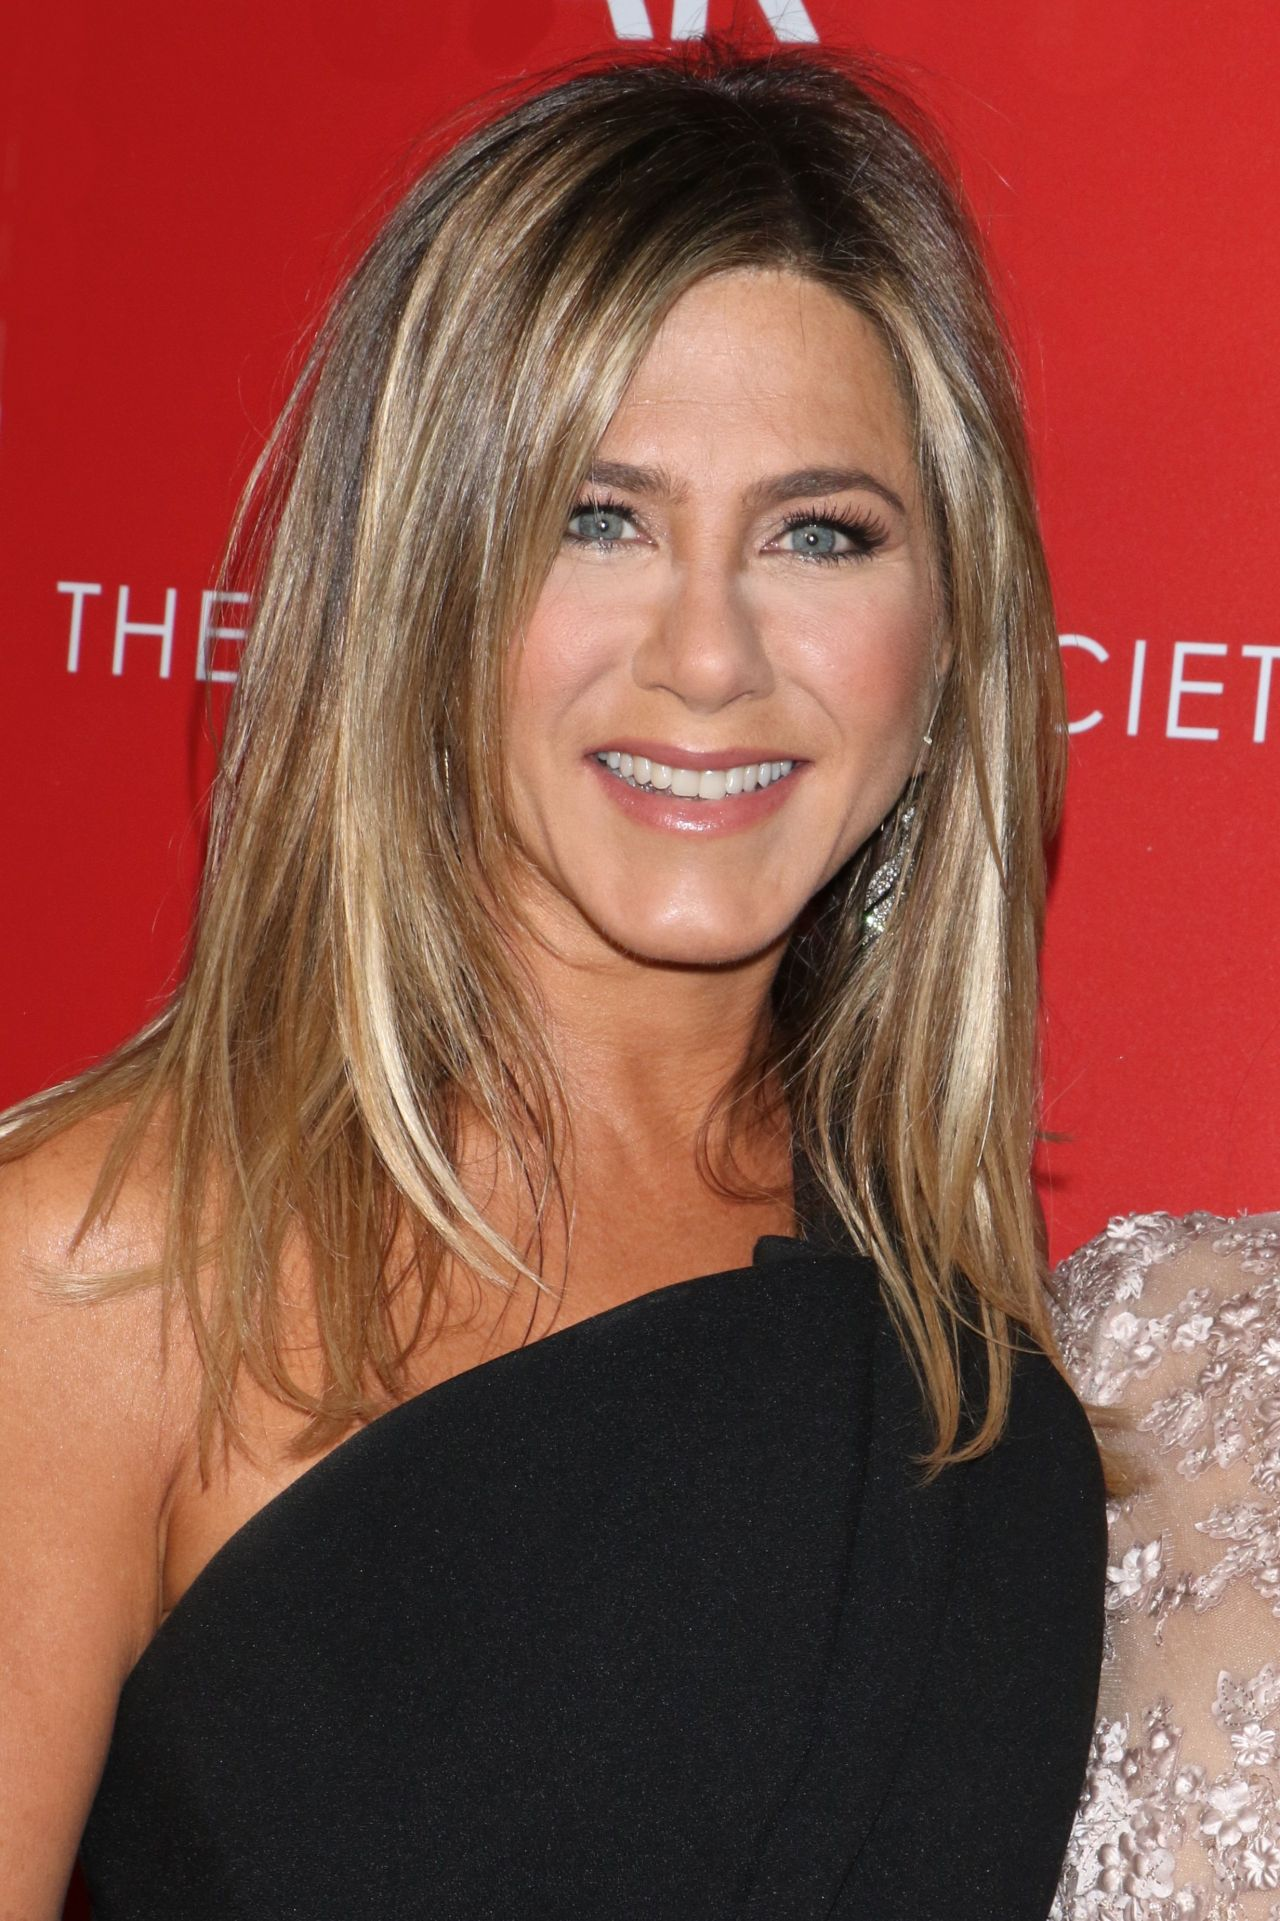 jennifer aniston - photo #6